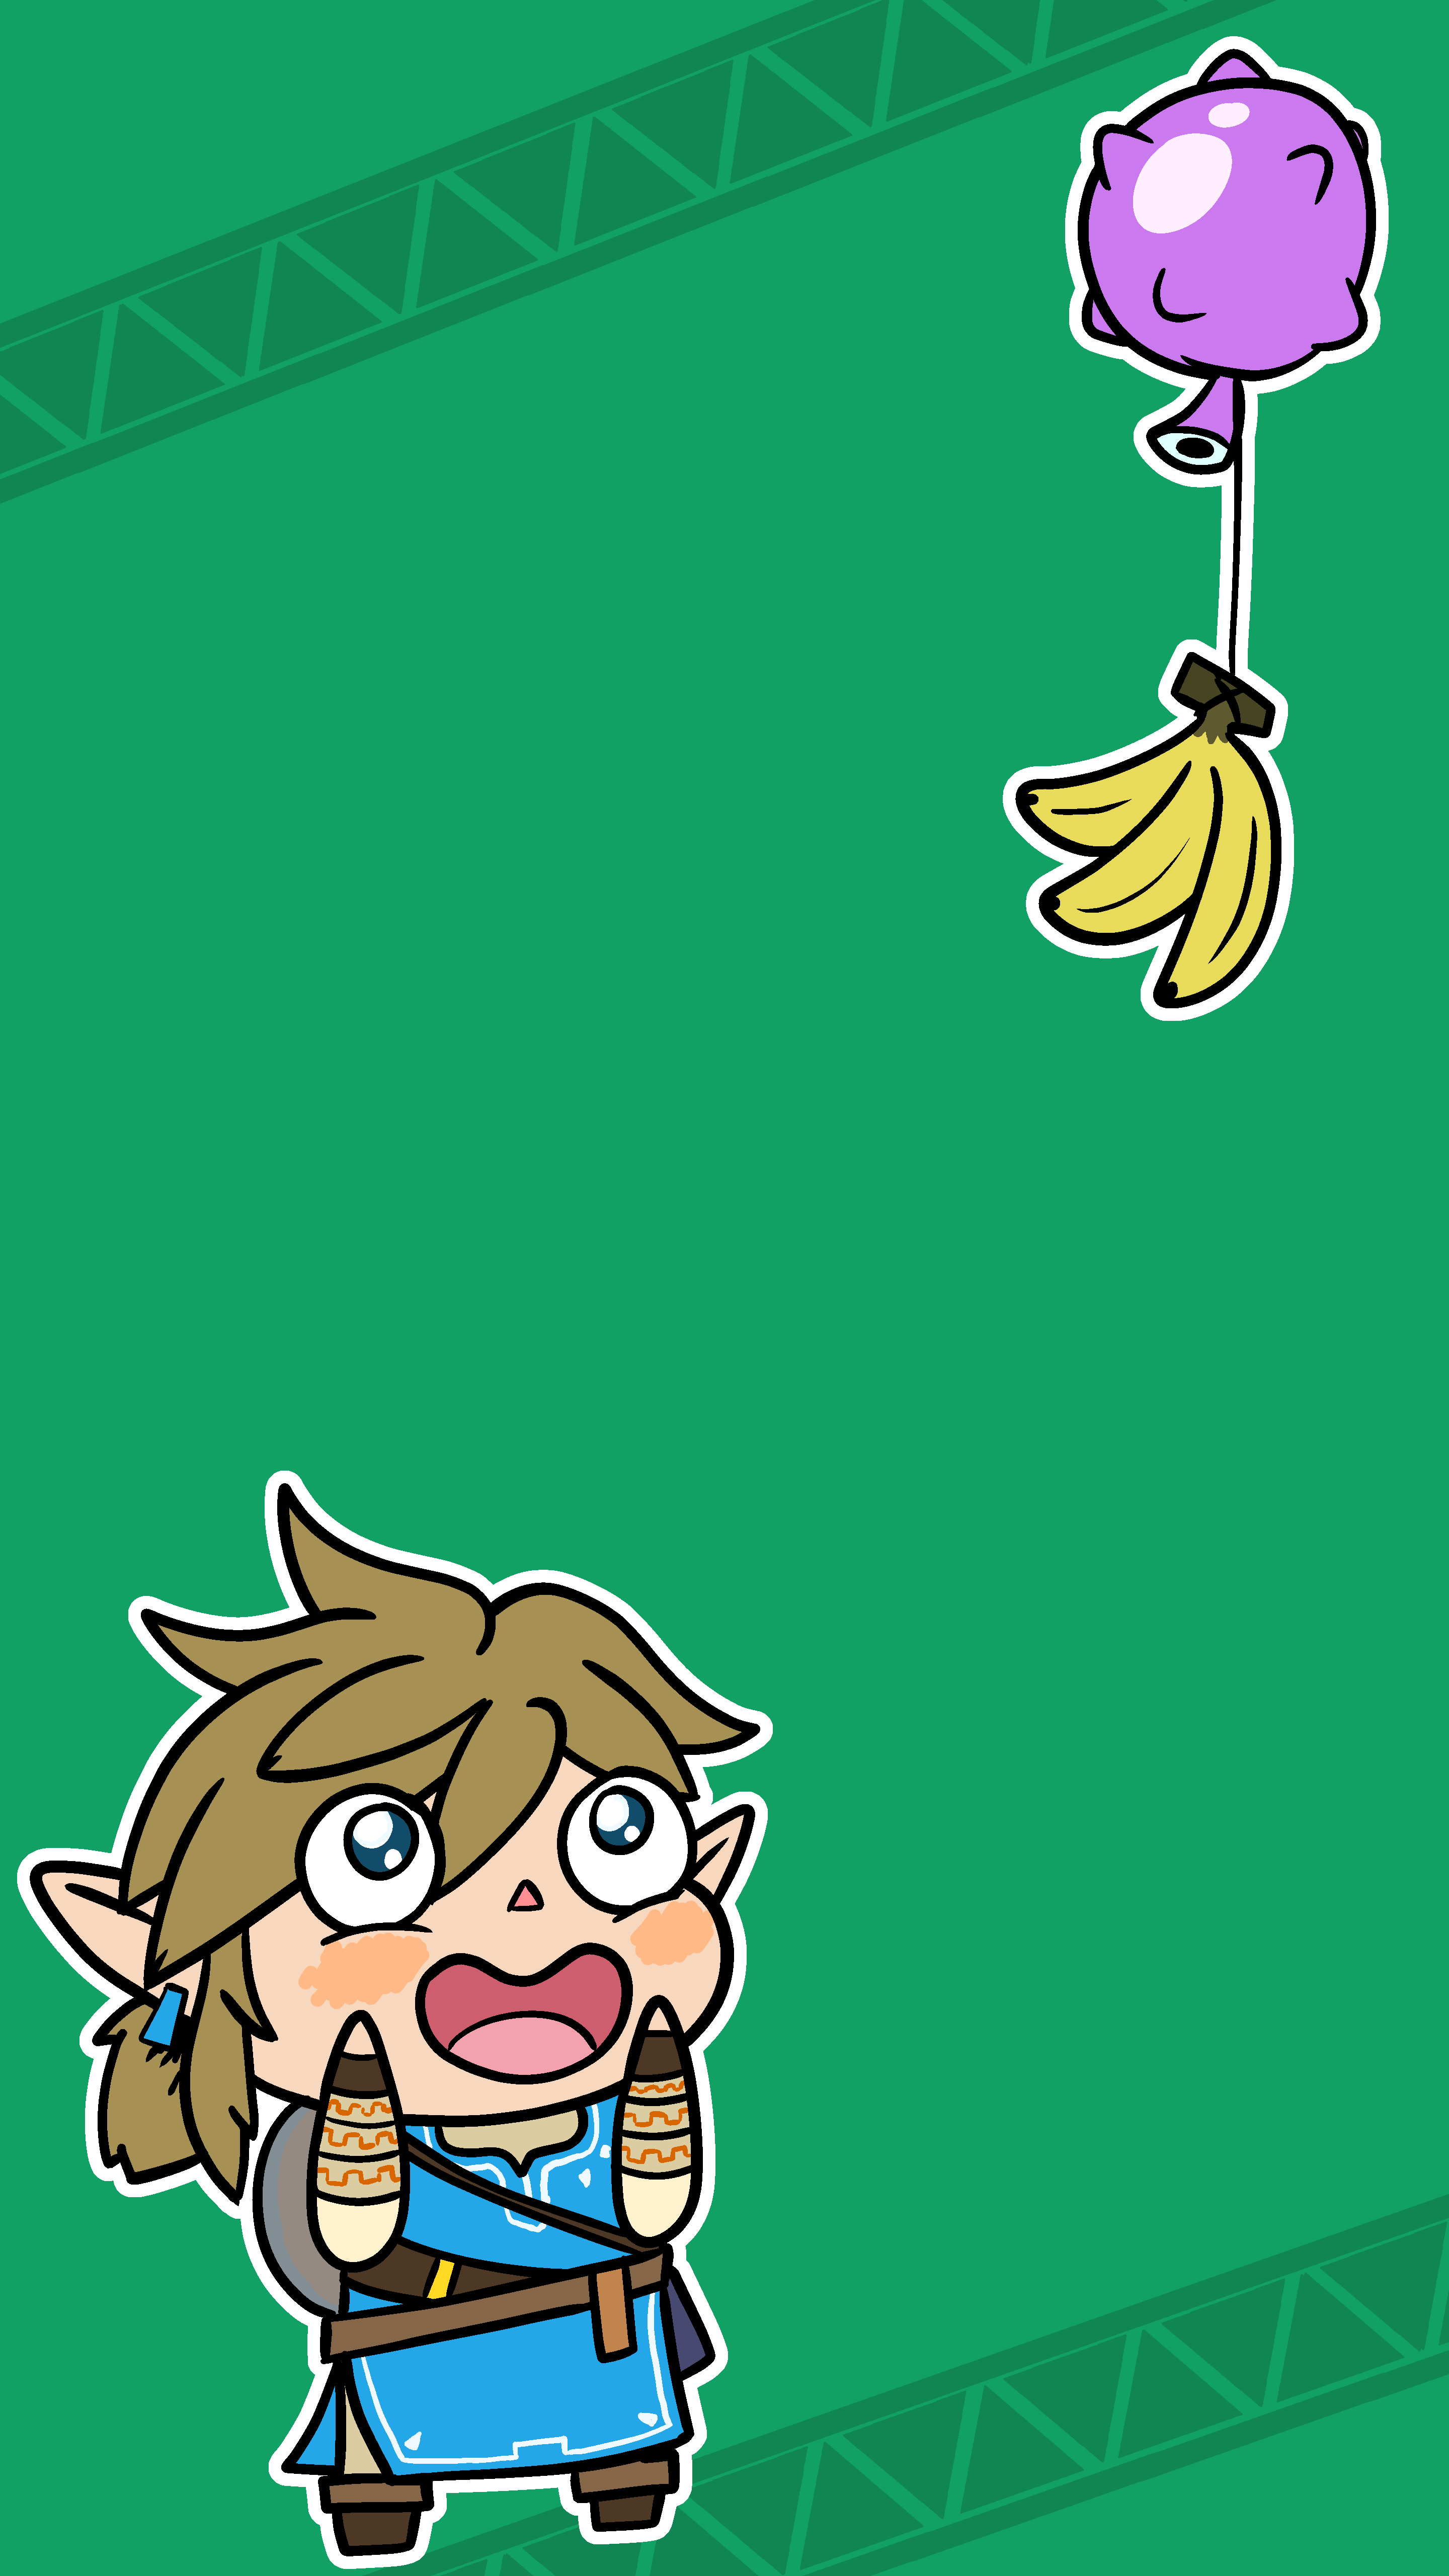 Chibi Breath of the Wild Android Wallpaper [1440x2560